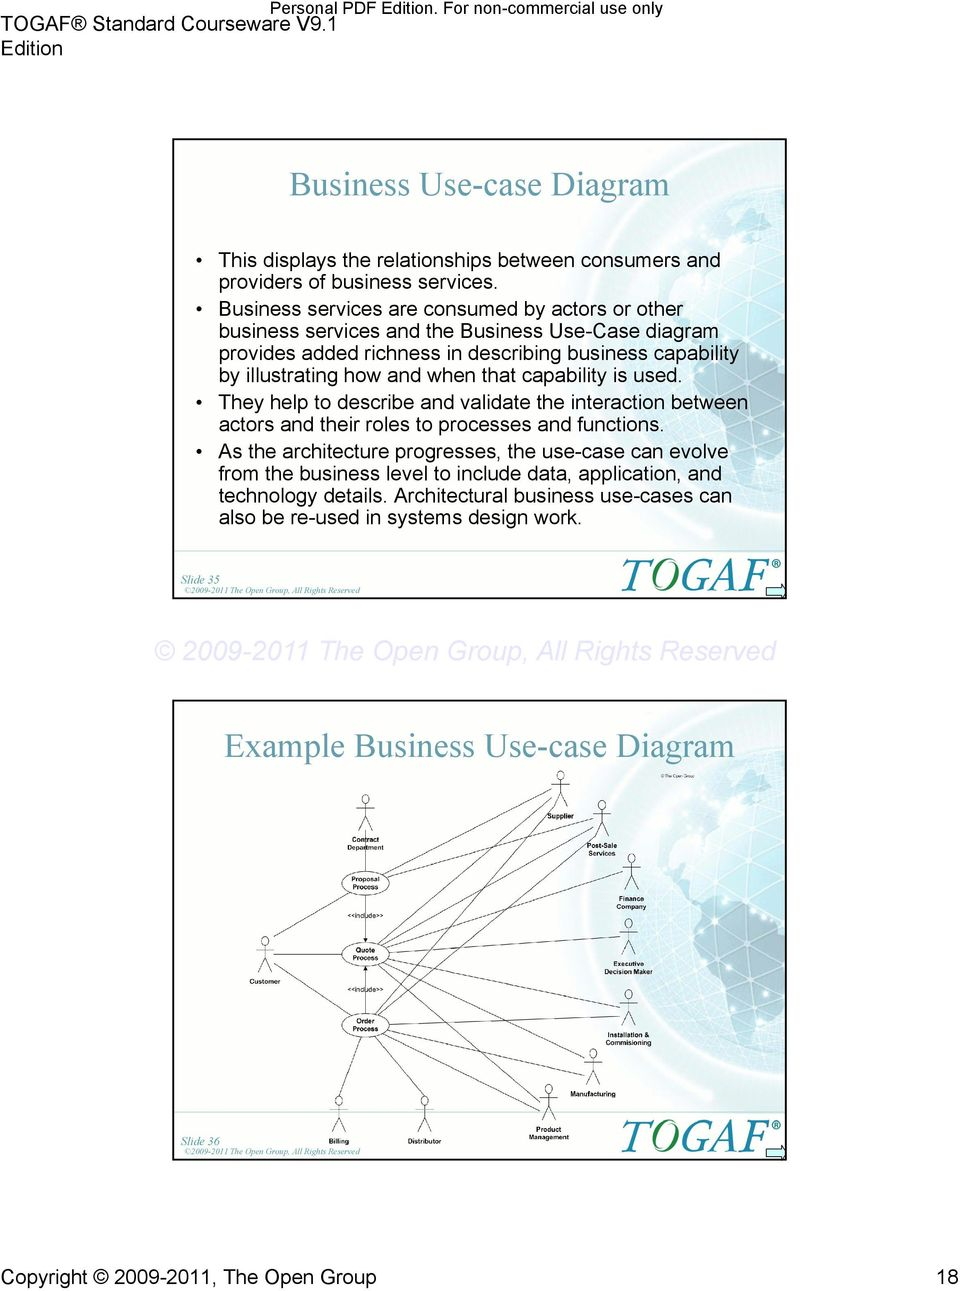 application of matrices in business problems pdf